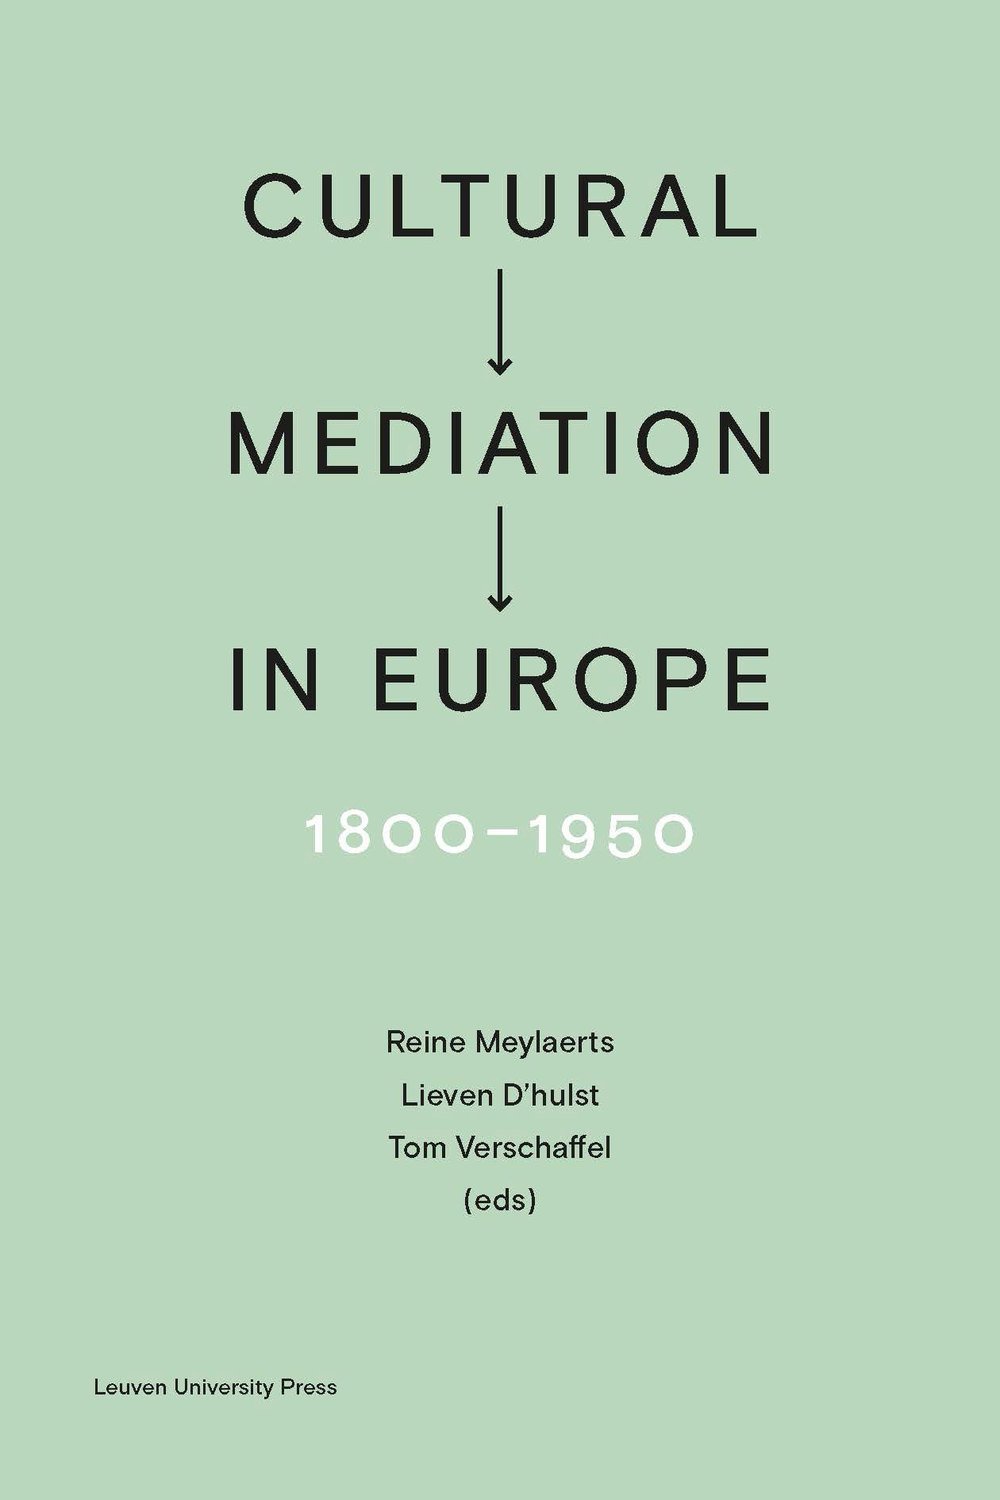 Cultural Mediation in Europe, 1800-1950